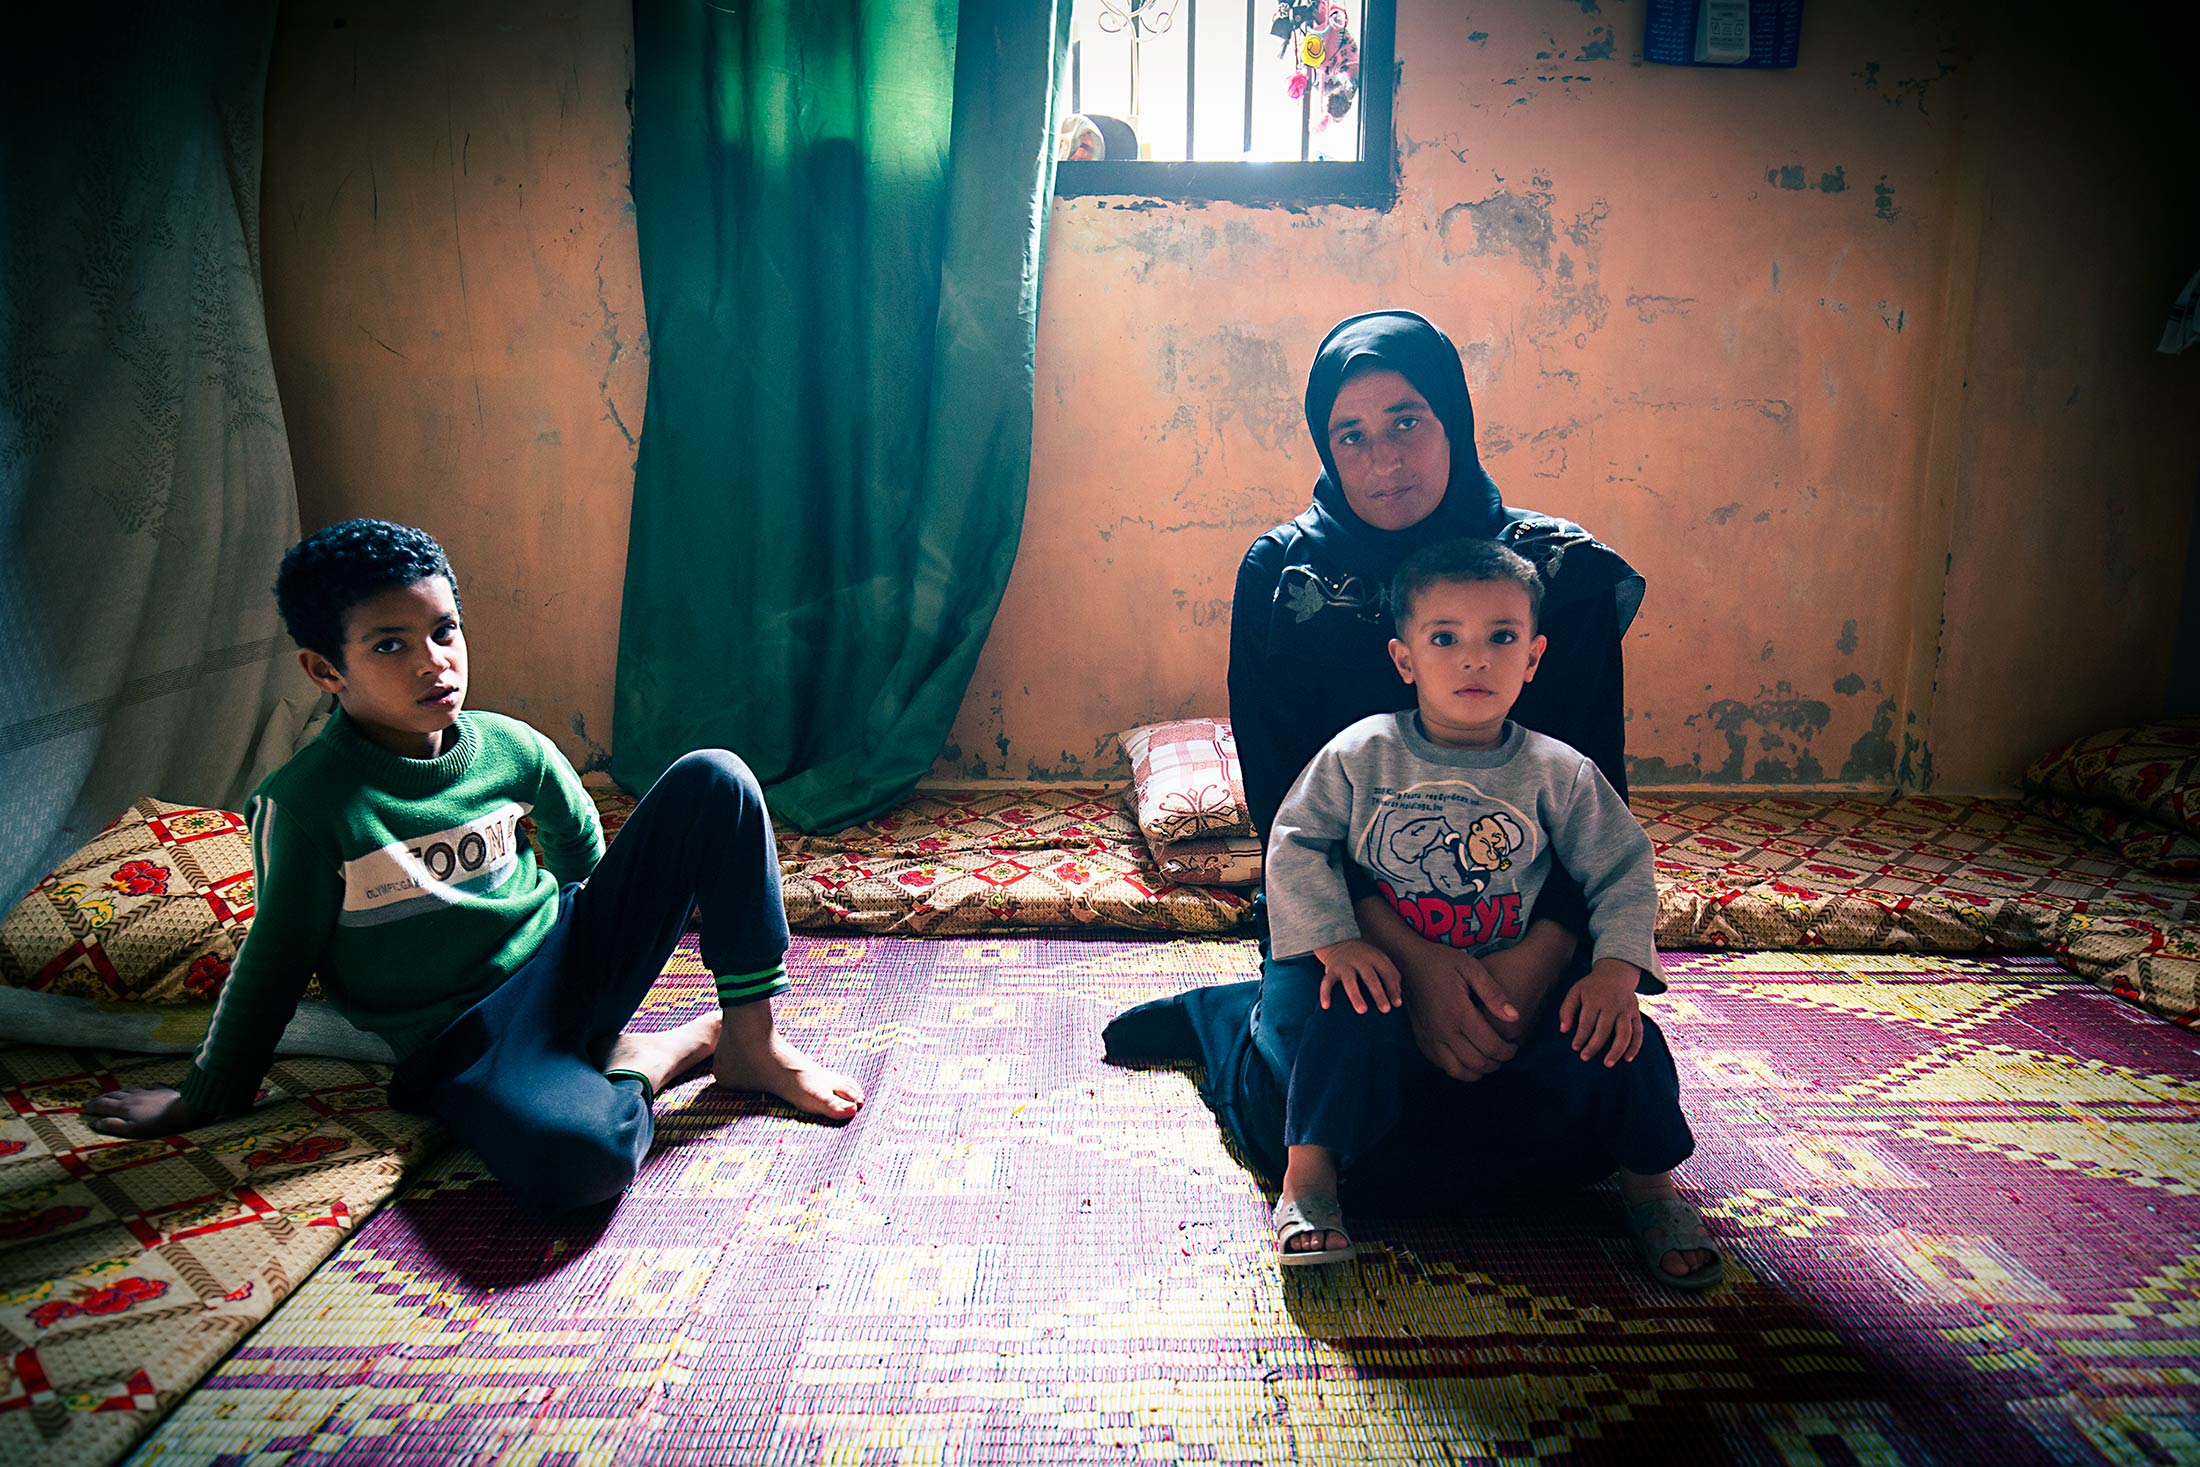 PALESTINIAN REFUGEE FAMILY 1